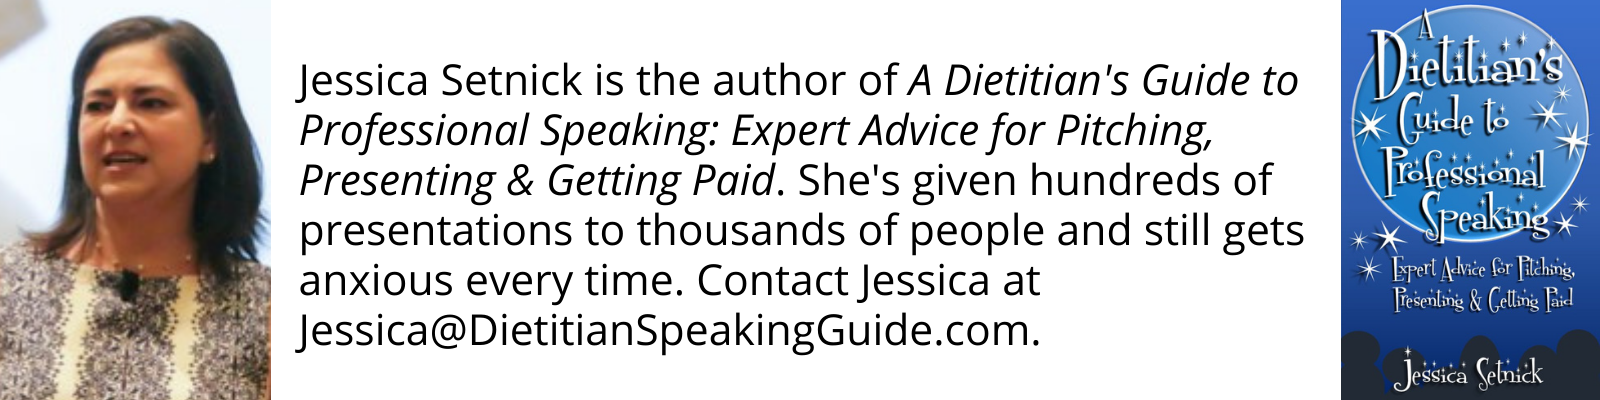 Jessica Setnick is the author of A Dietitian's Guide to Professional Speaking: Expert Advice for Pitching, Presenting & Getting Paid